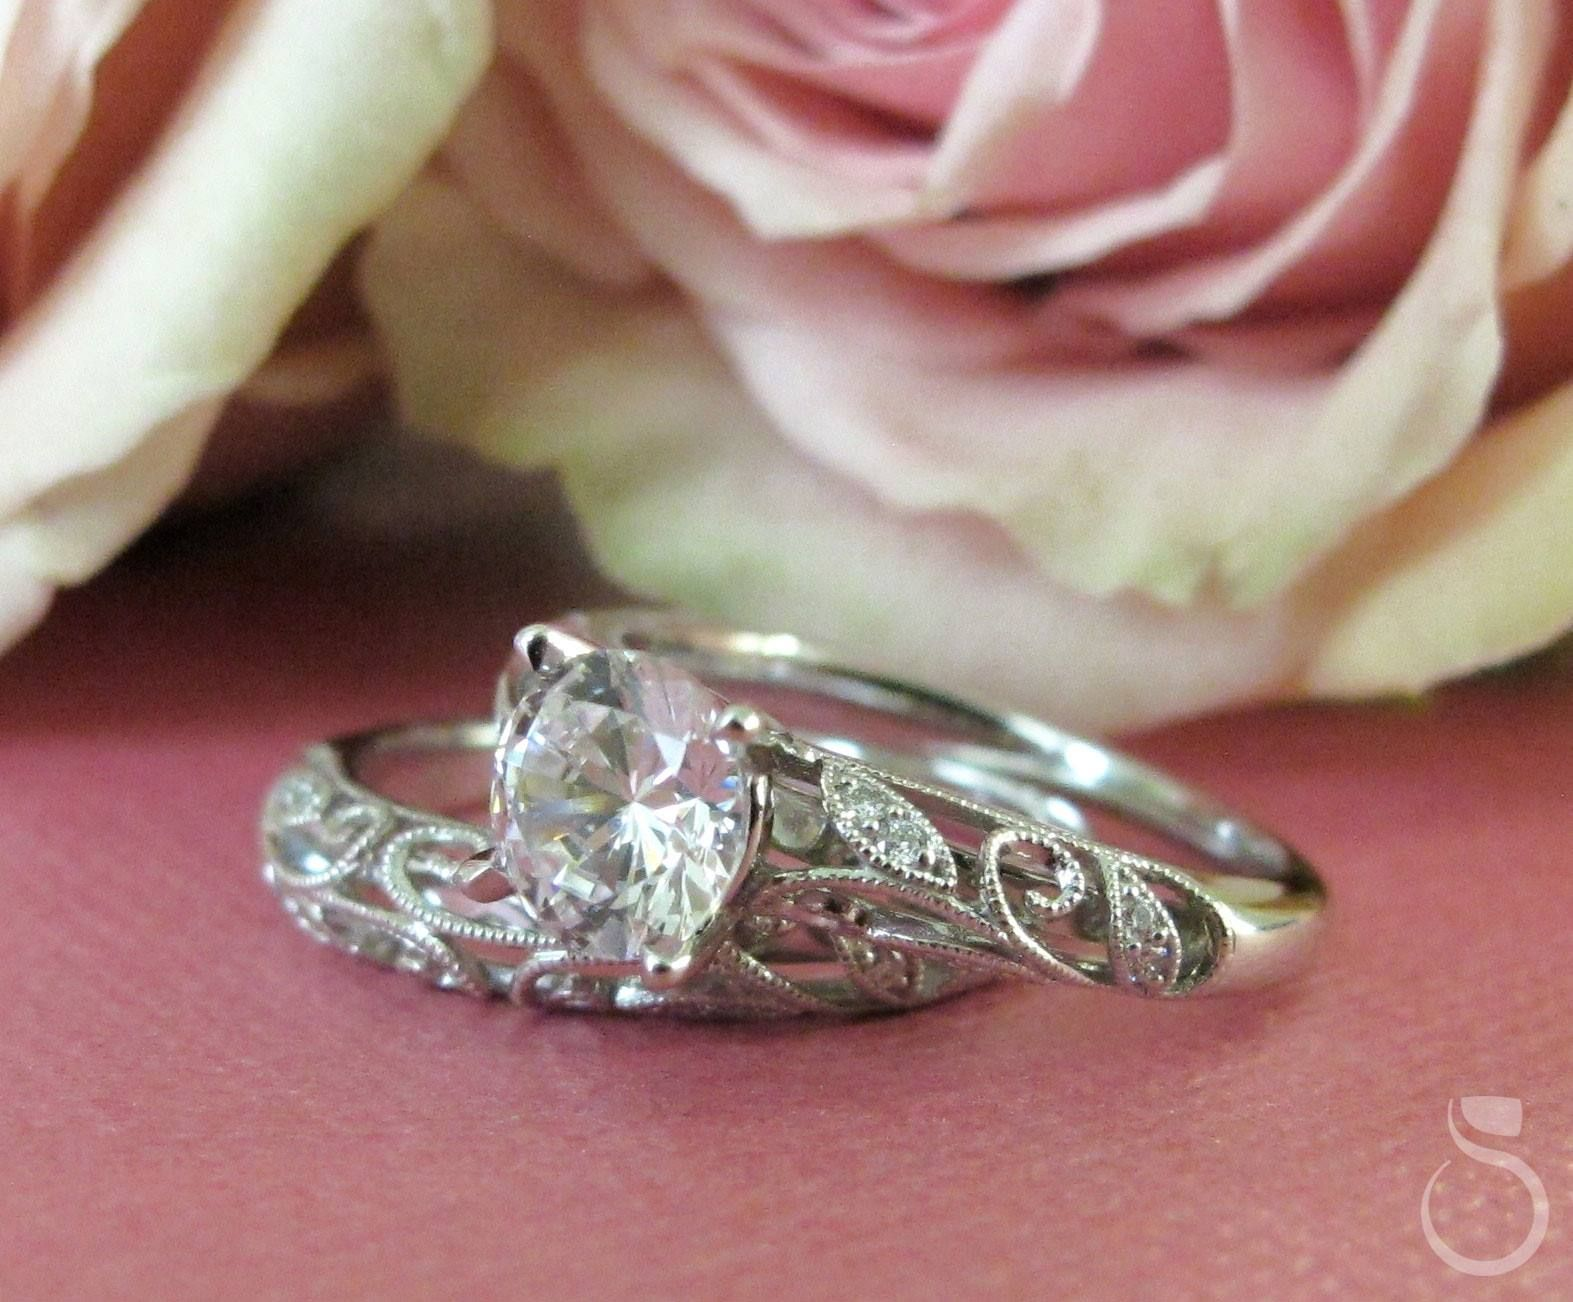 Beautiful Vintage And Floral Inspired Diamond Engagement Ring And Wedding Band From Sylvie Collection S Fine Jewels Designer Engagement Rings Engagement Rings